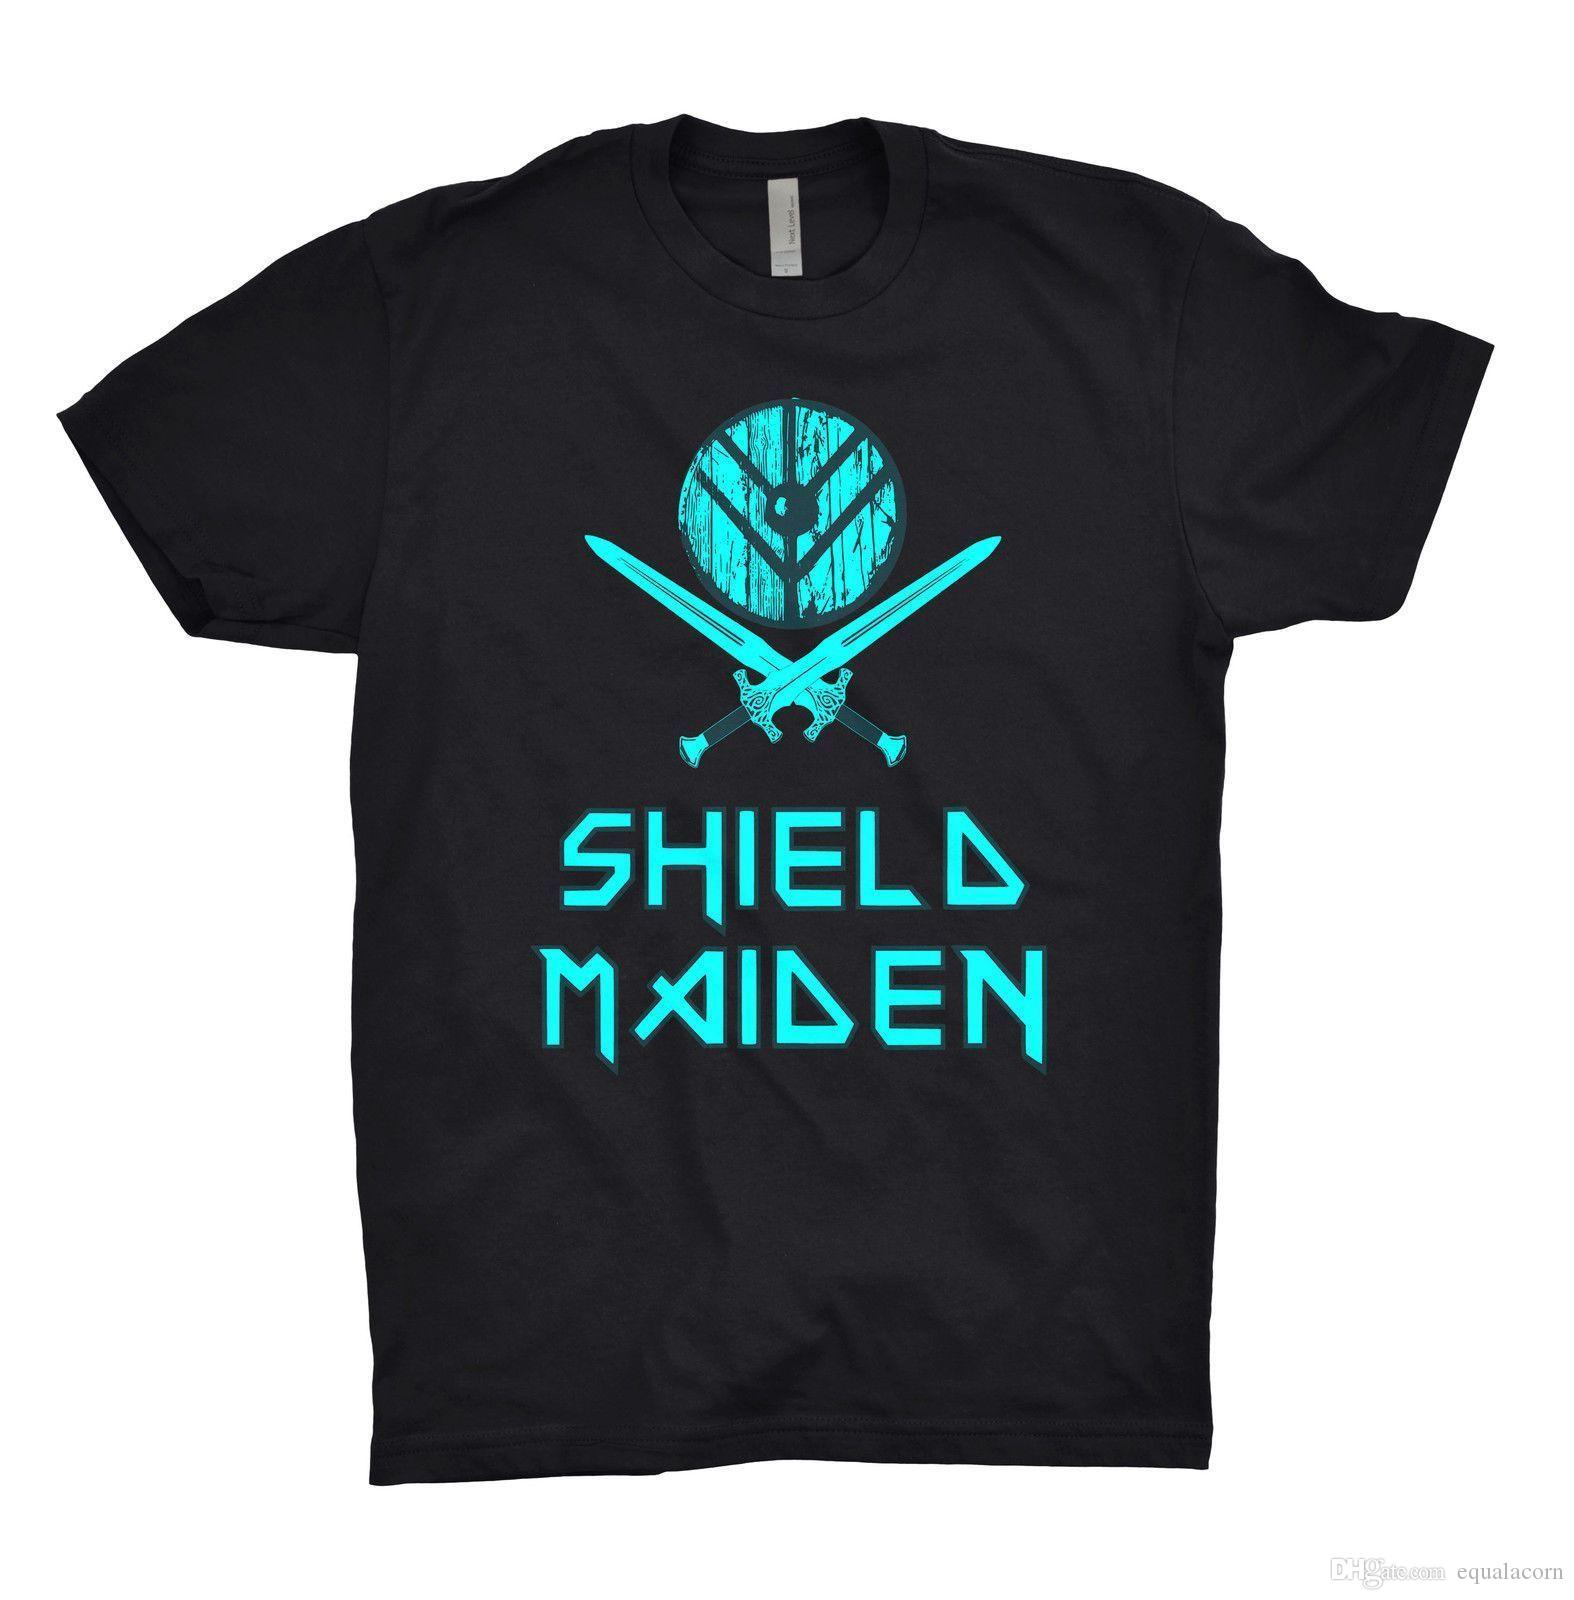 67058982 Shield Maiden T Shirt Vikings Odin Thor Valhalla Themed Shirts Latest T  Shirts Design From Equalacorn, $10.3| DHgate.Com